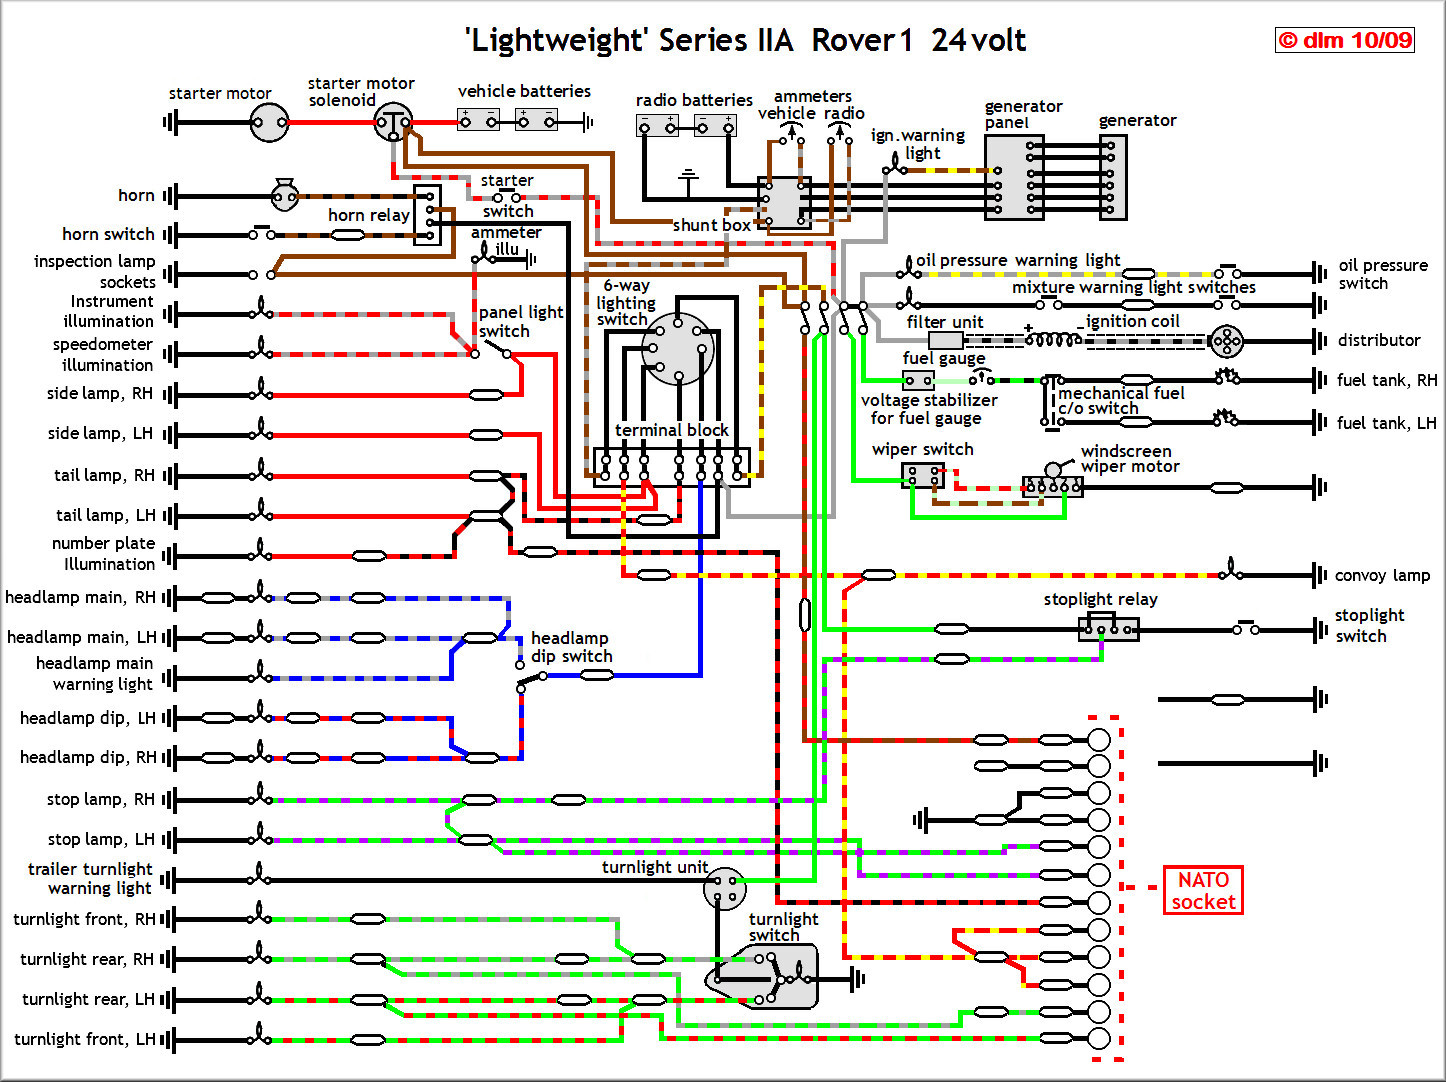 rover1 24Av land rover lr3 wiring diagram land rover belt routing \u2022 wiring Basic Electrical Wiring Diagrams at pacquiaovsvargaslive.co